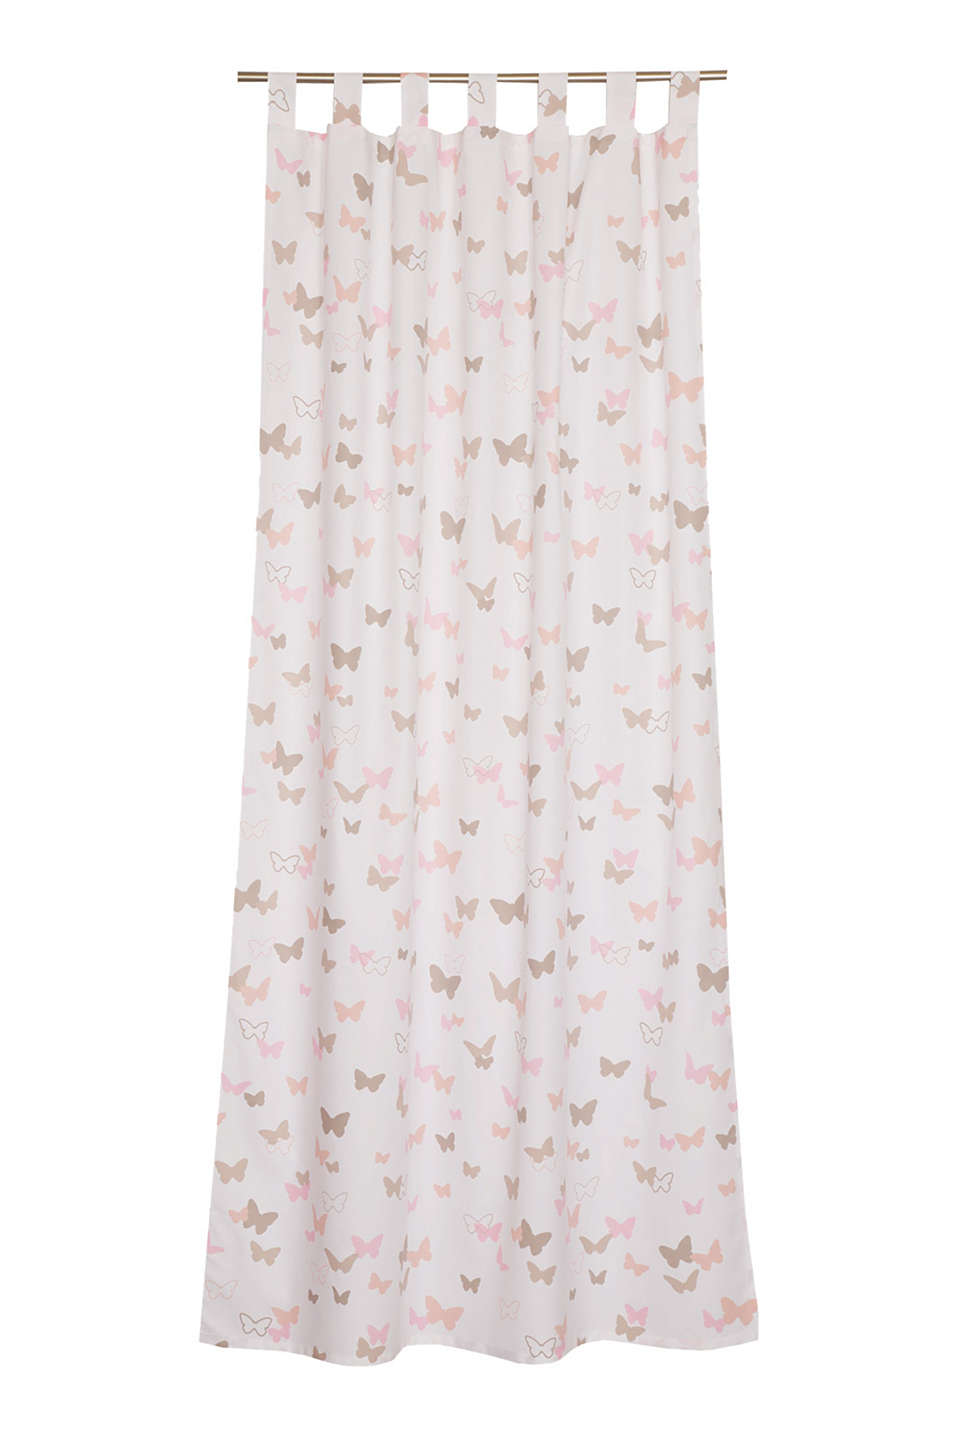 Kids tab top curtain, blended cotton, PINK, detail image number 0